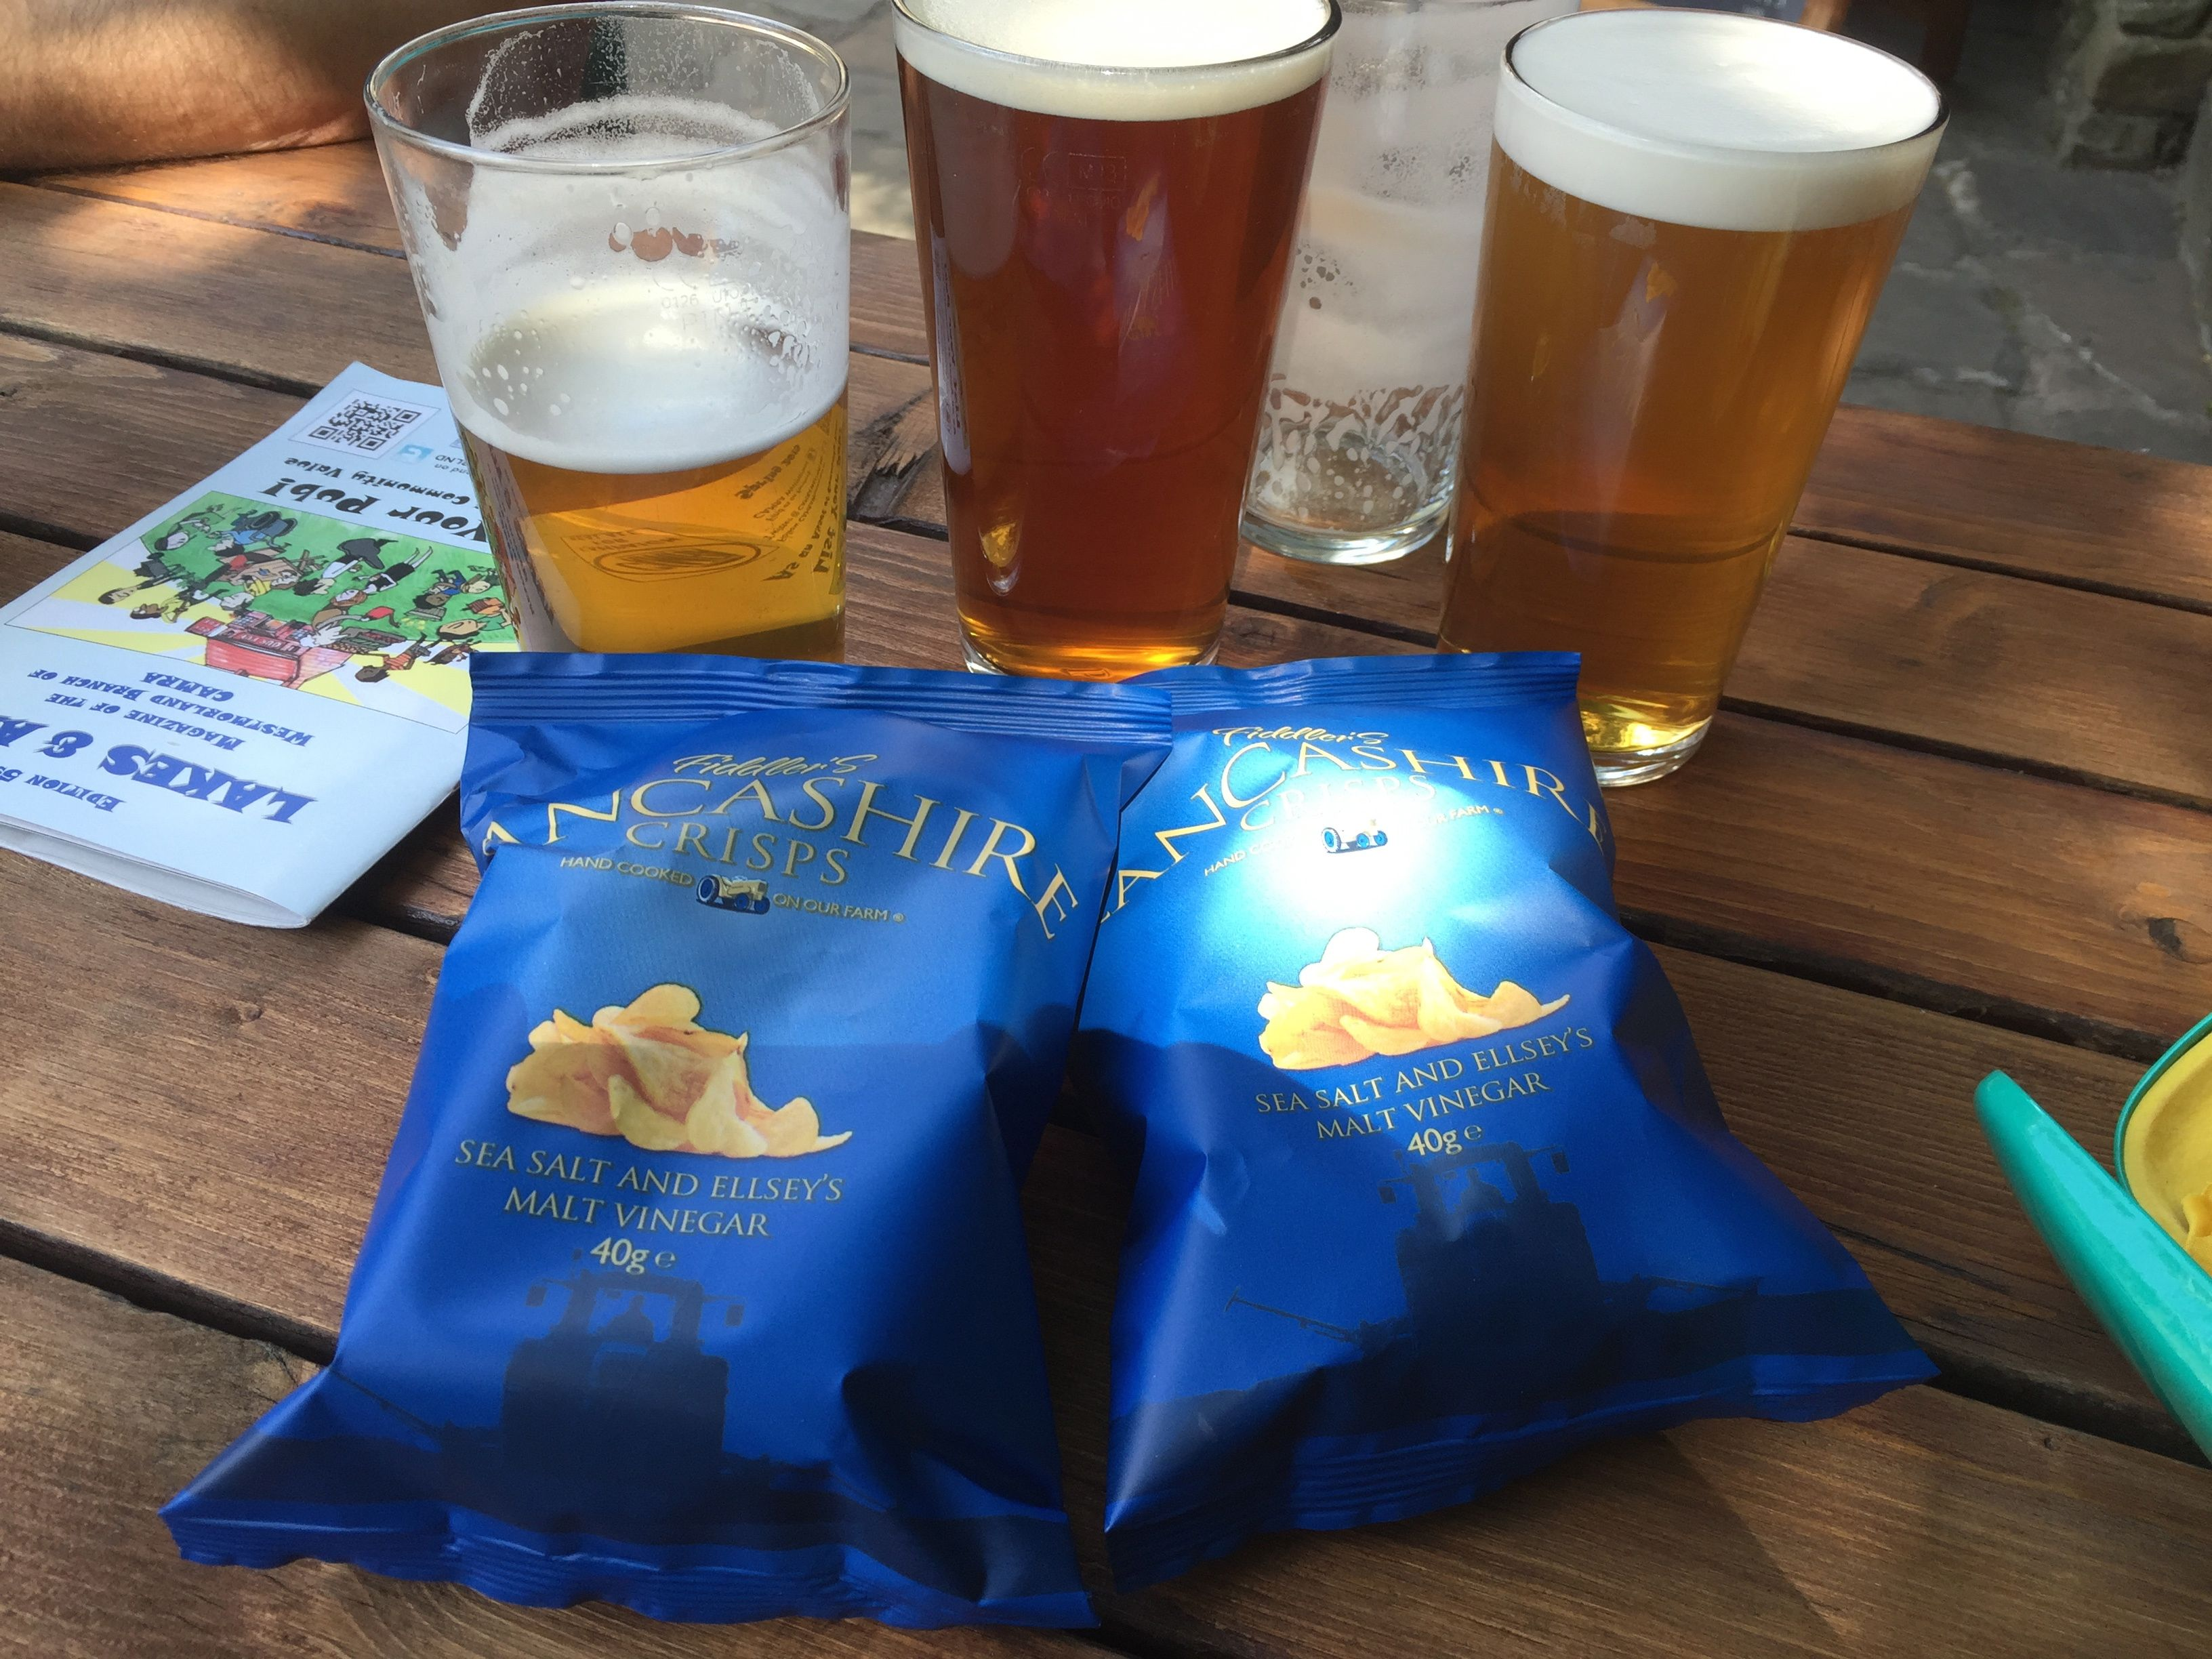 Beers and crisps